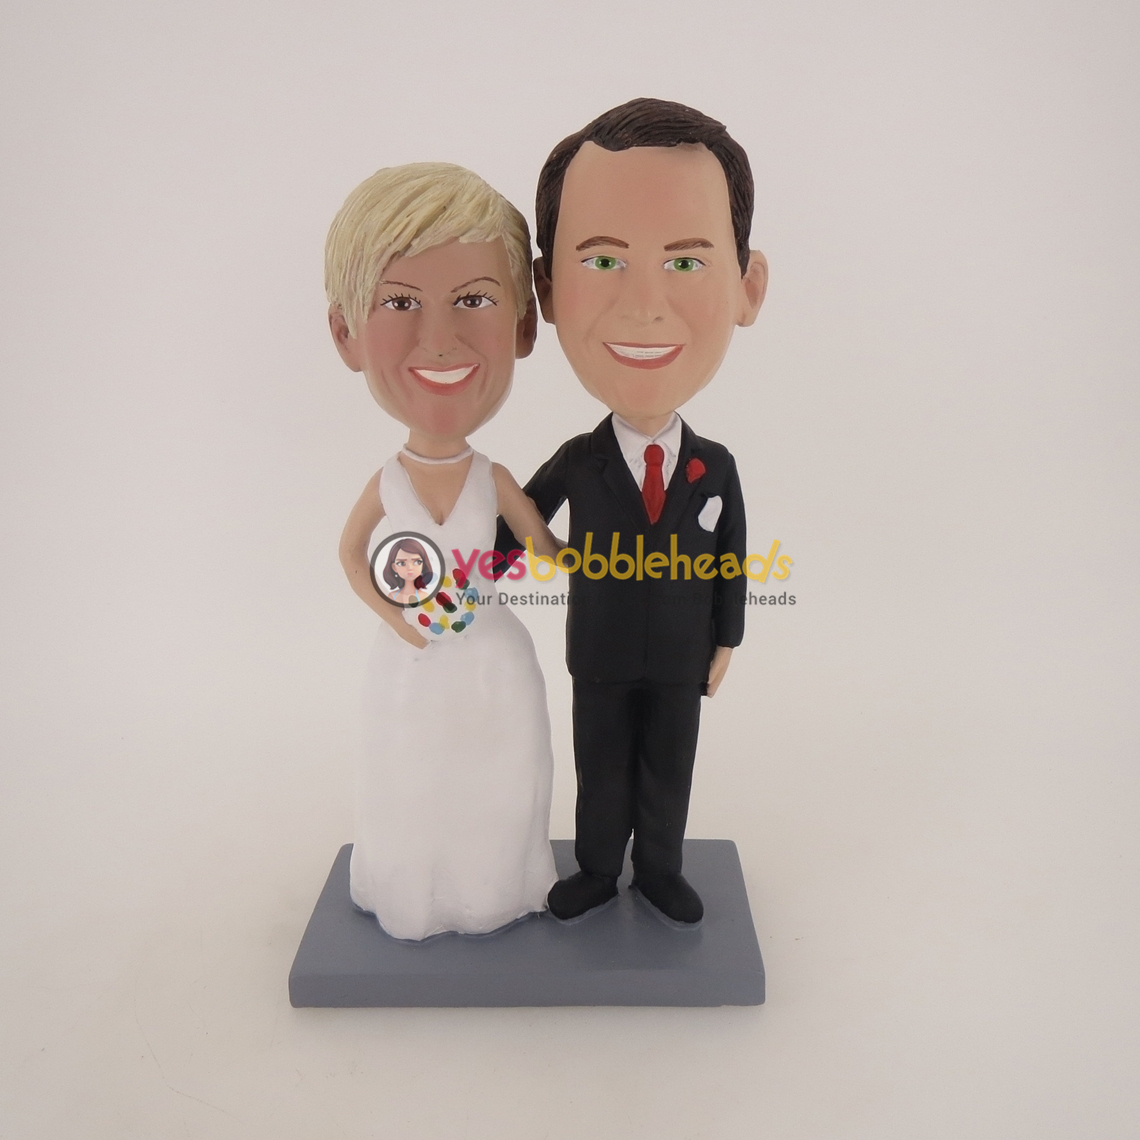 Picture of Custom Bobblehead Doll: Arms Crossed Happy Wedding Couple